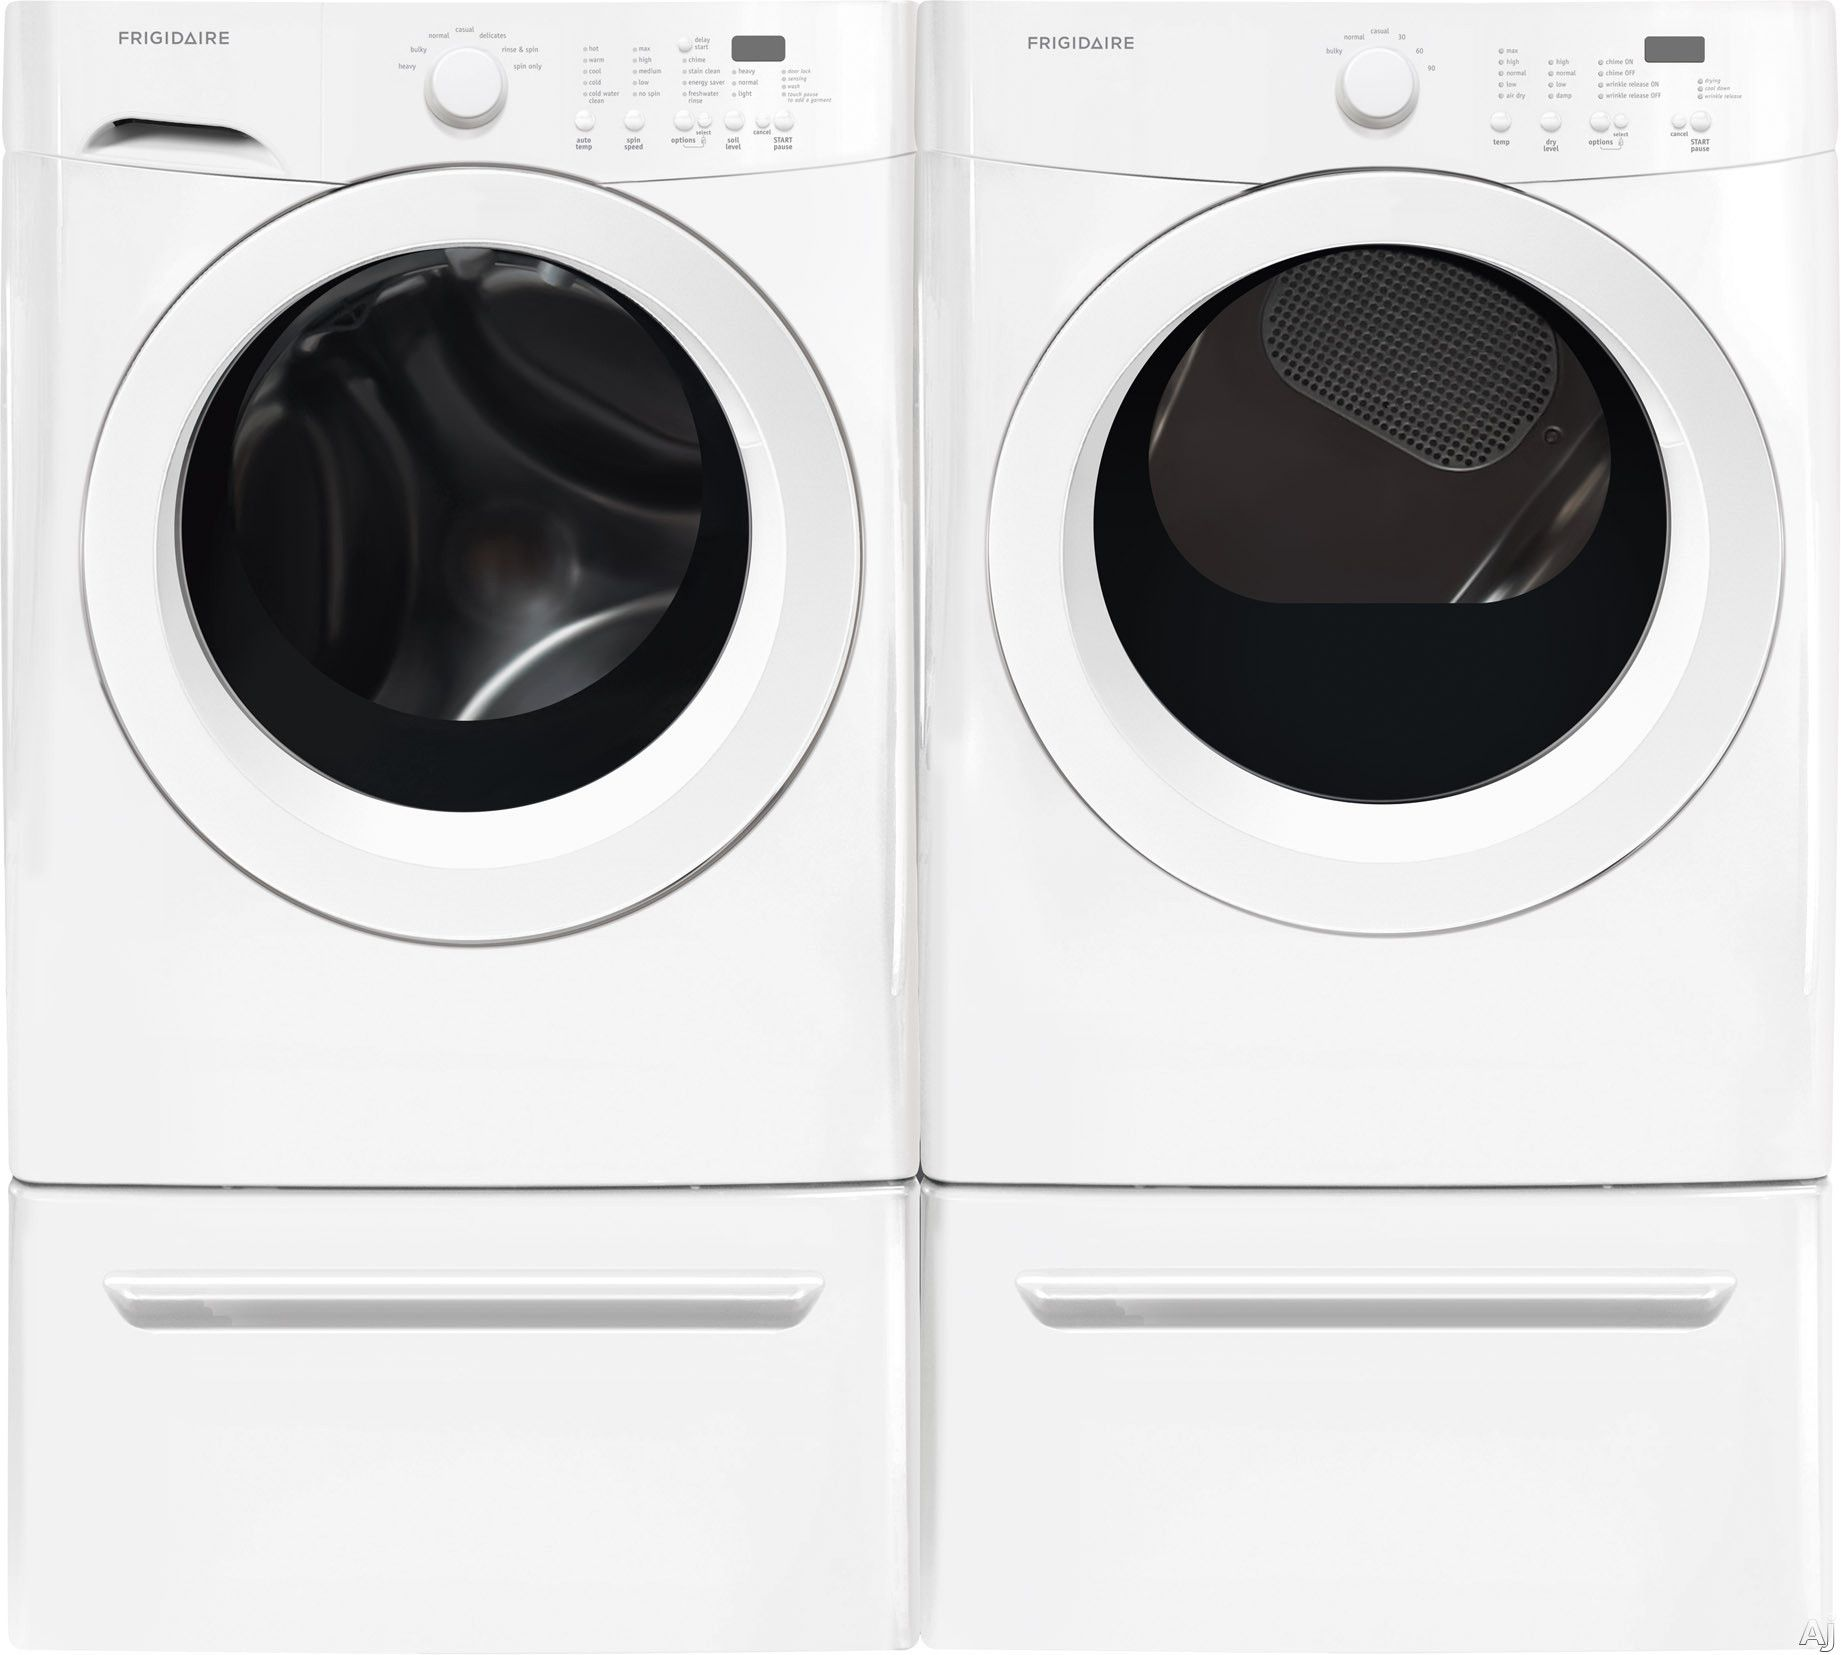 washers dryers front load ft cu pin blue pedestals sapphire washer electric samsung and dryer pedestal